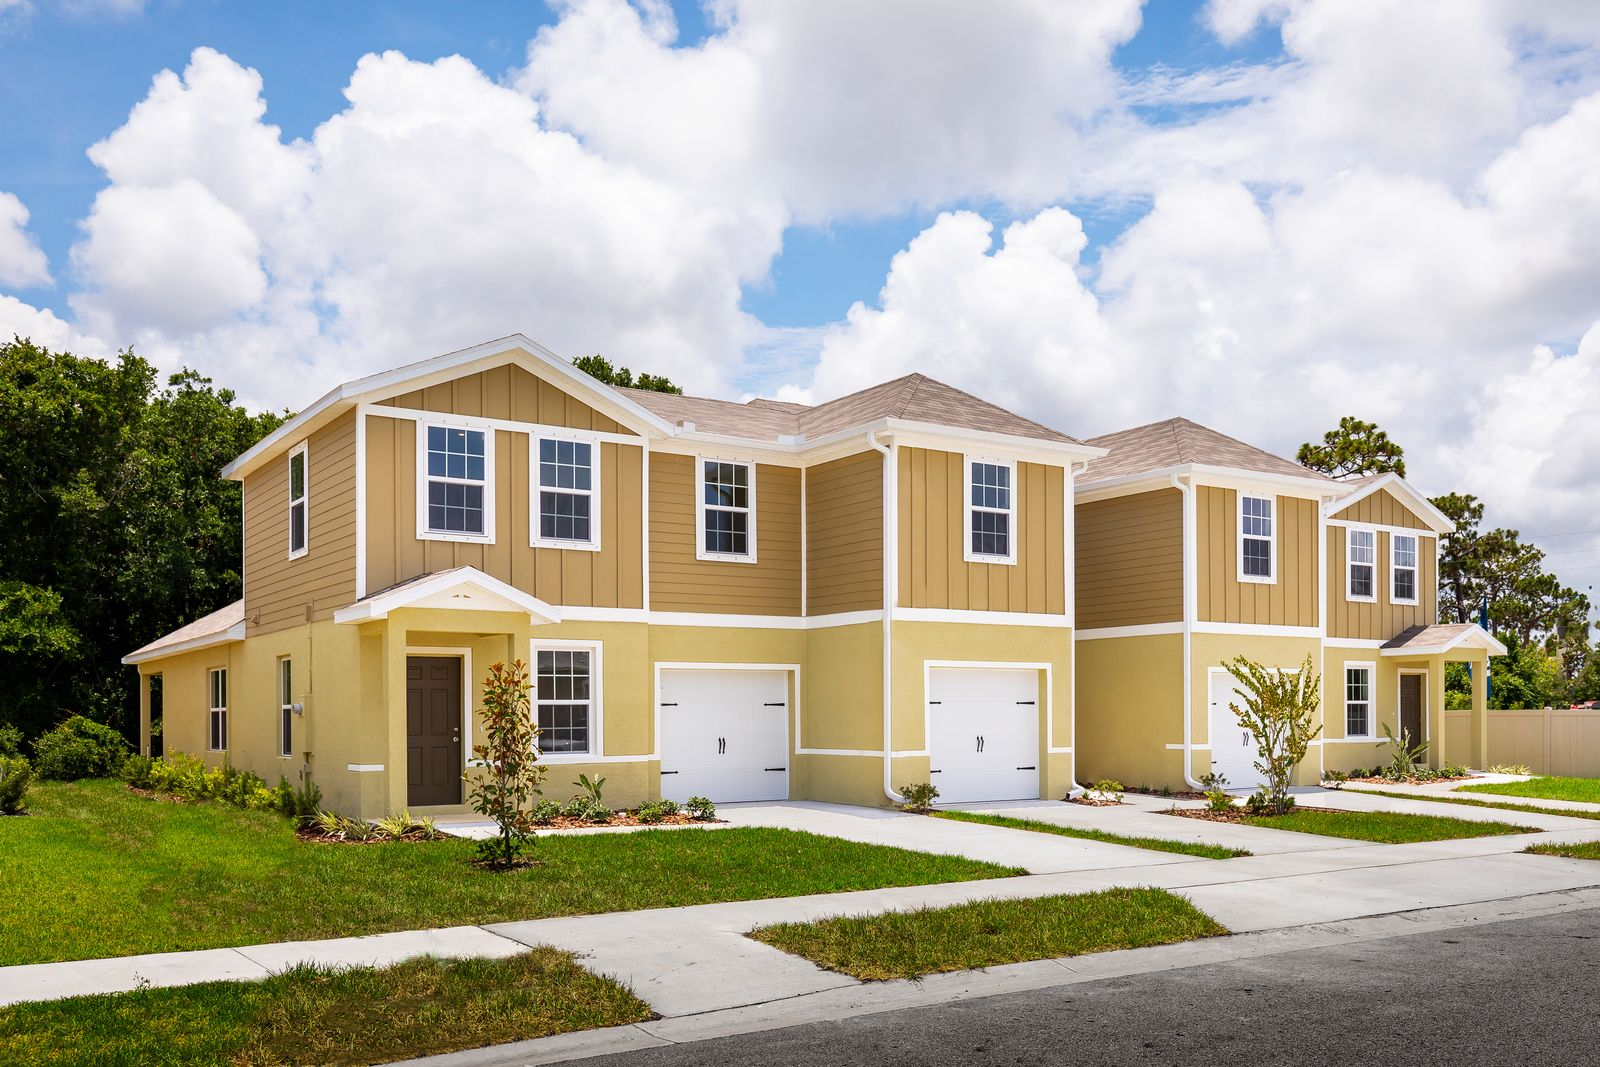 Welcome Home to Anclote Square:Affordably priced new construction townhomes, featuring low-maintenance living and a convenient location, priced from the mid $200s.Sign up to be a VIP today!